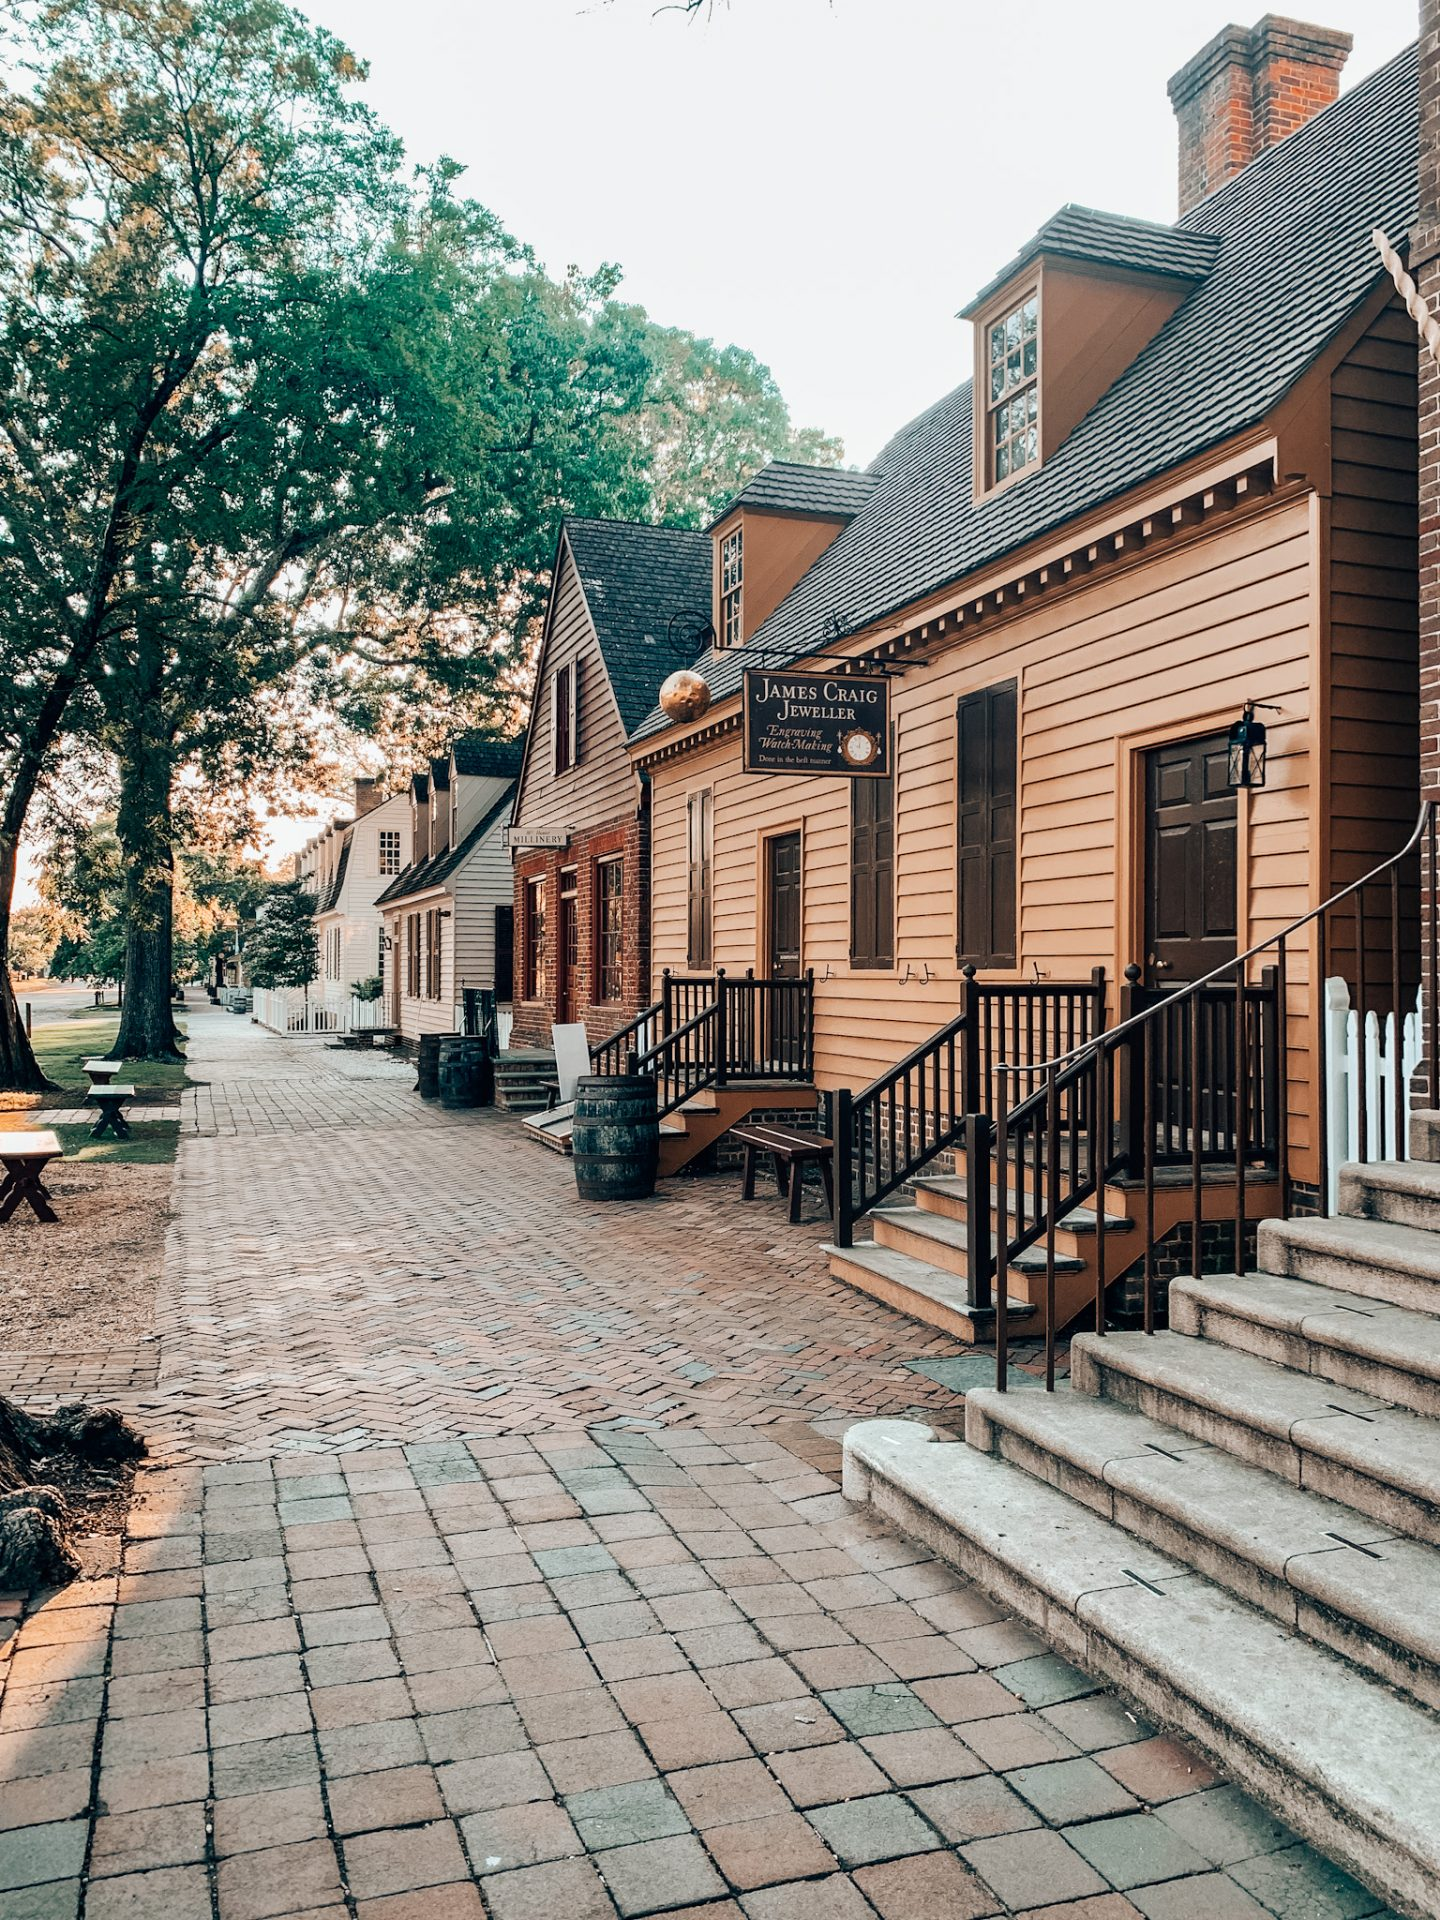 Homes on Duke of Gloucester is one of the top things to do in Williamsburg, VA